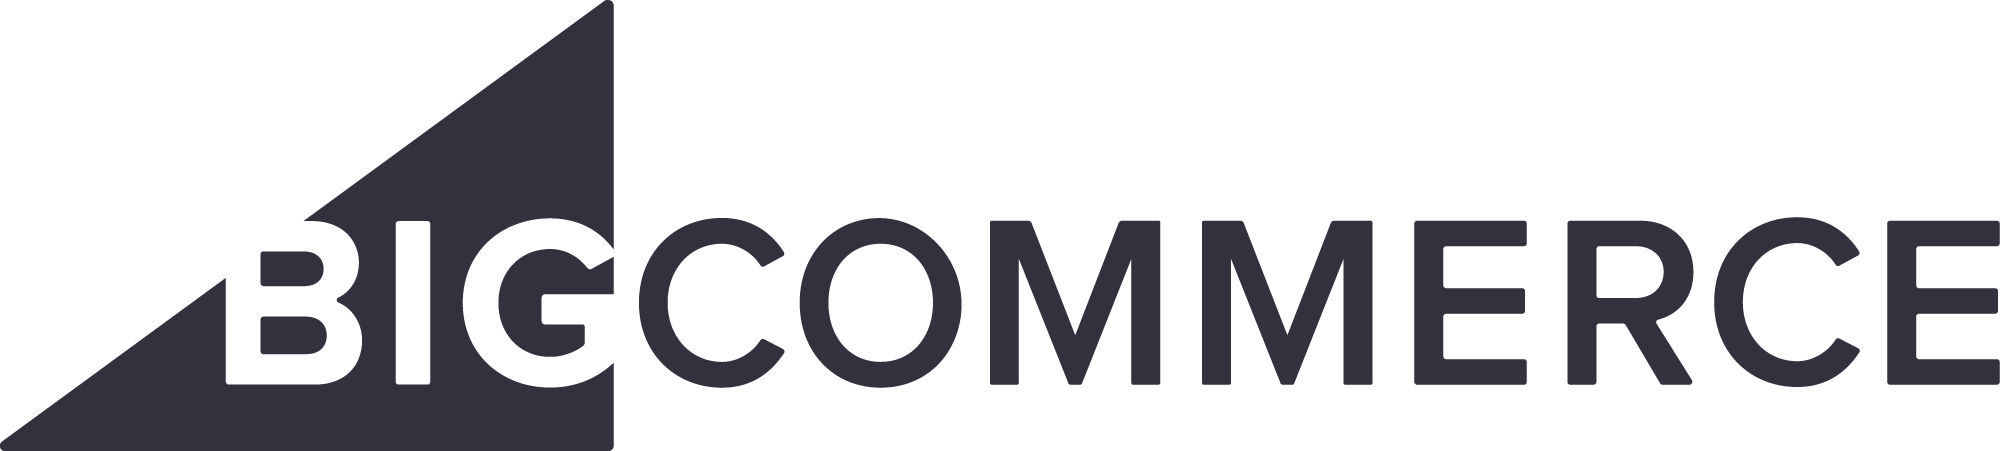 logo-BigCommerce-dark